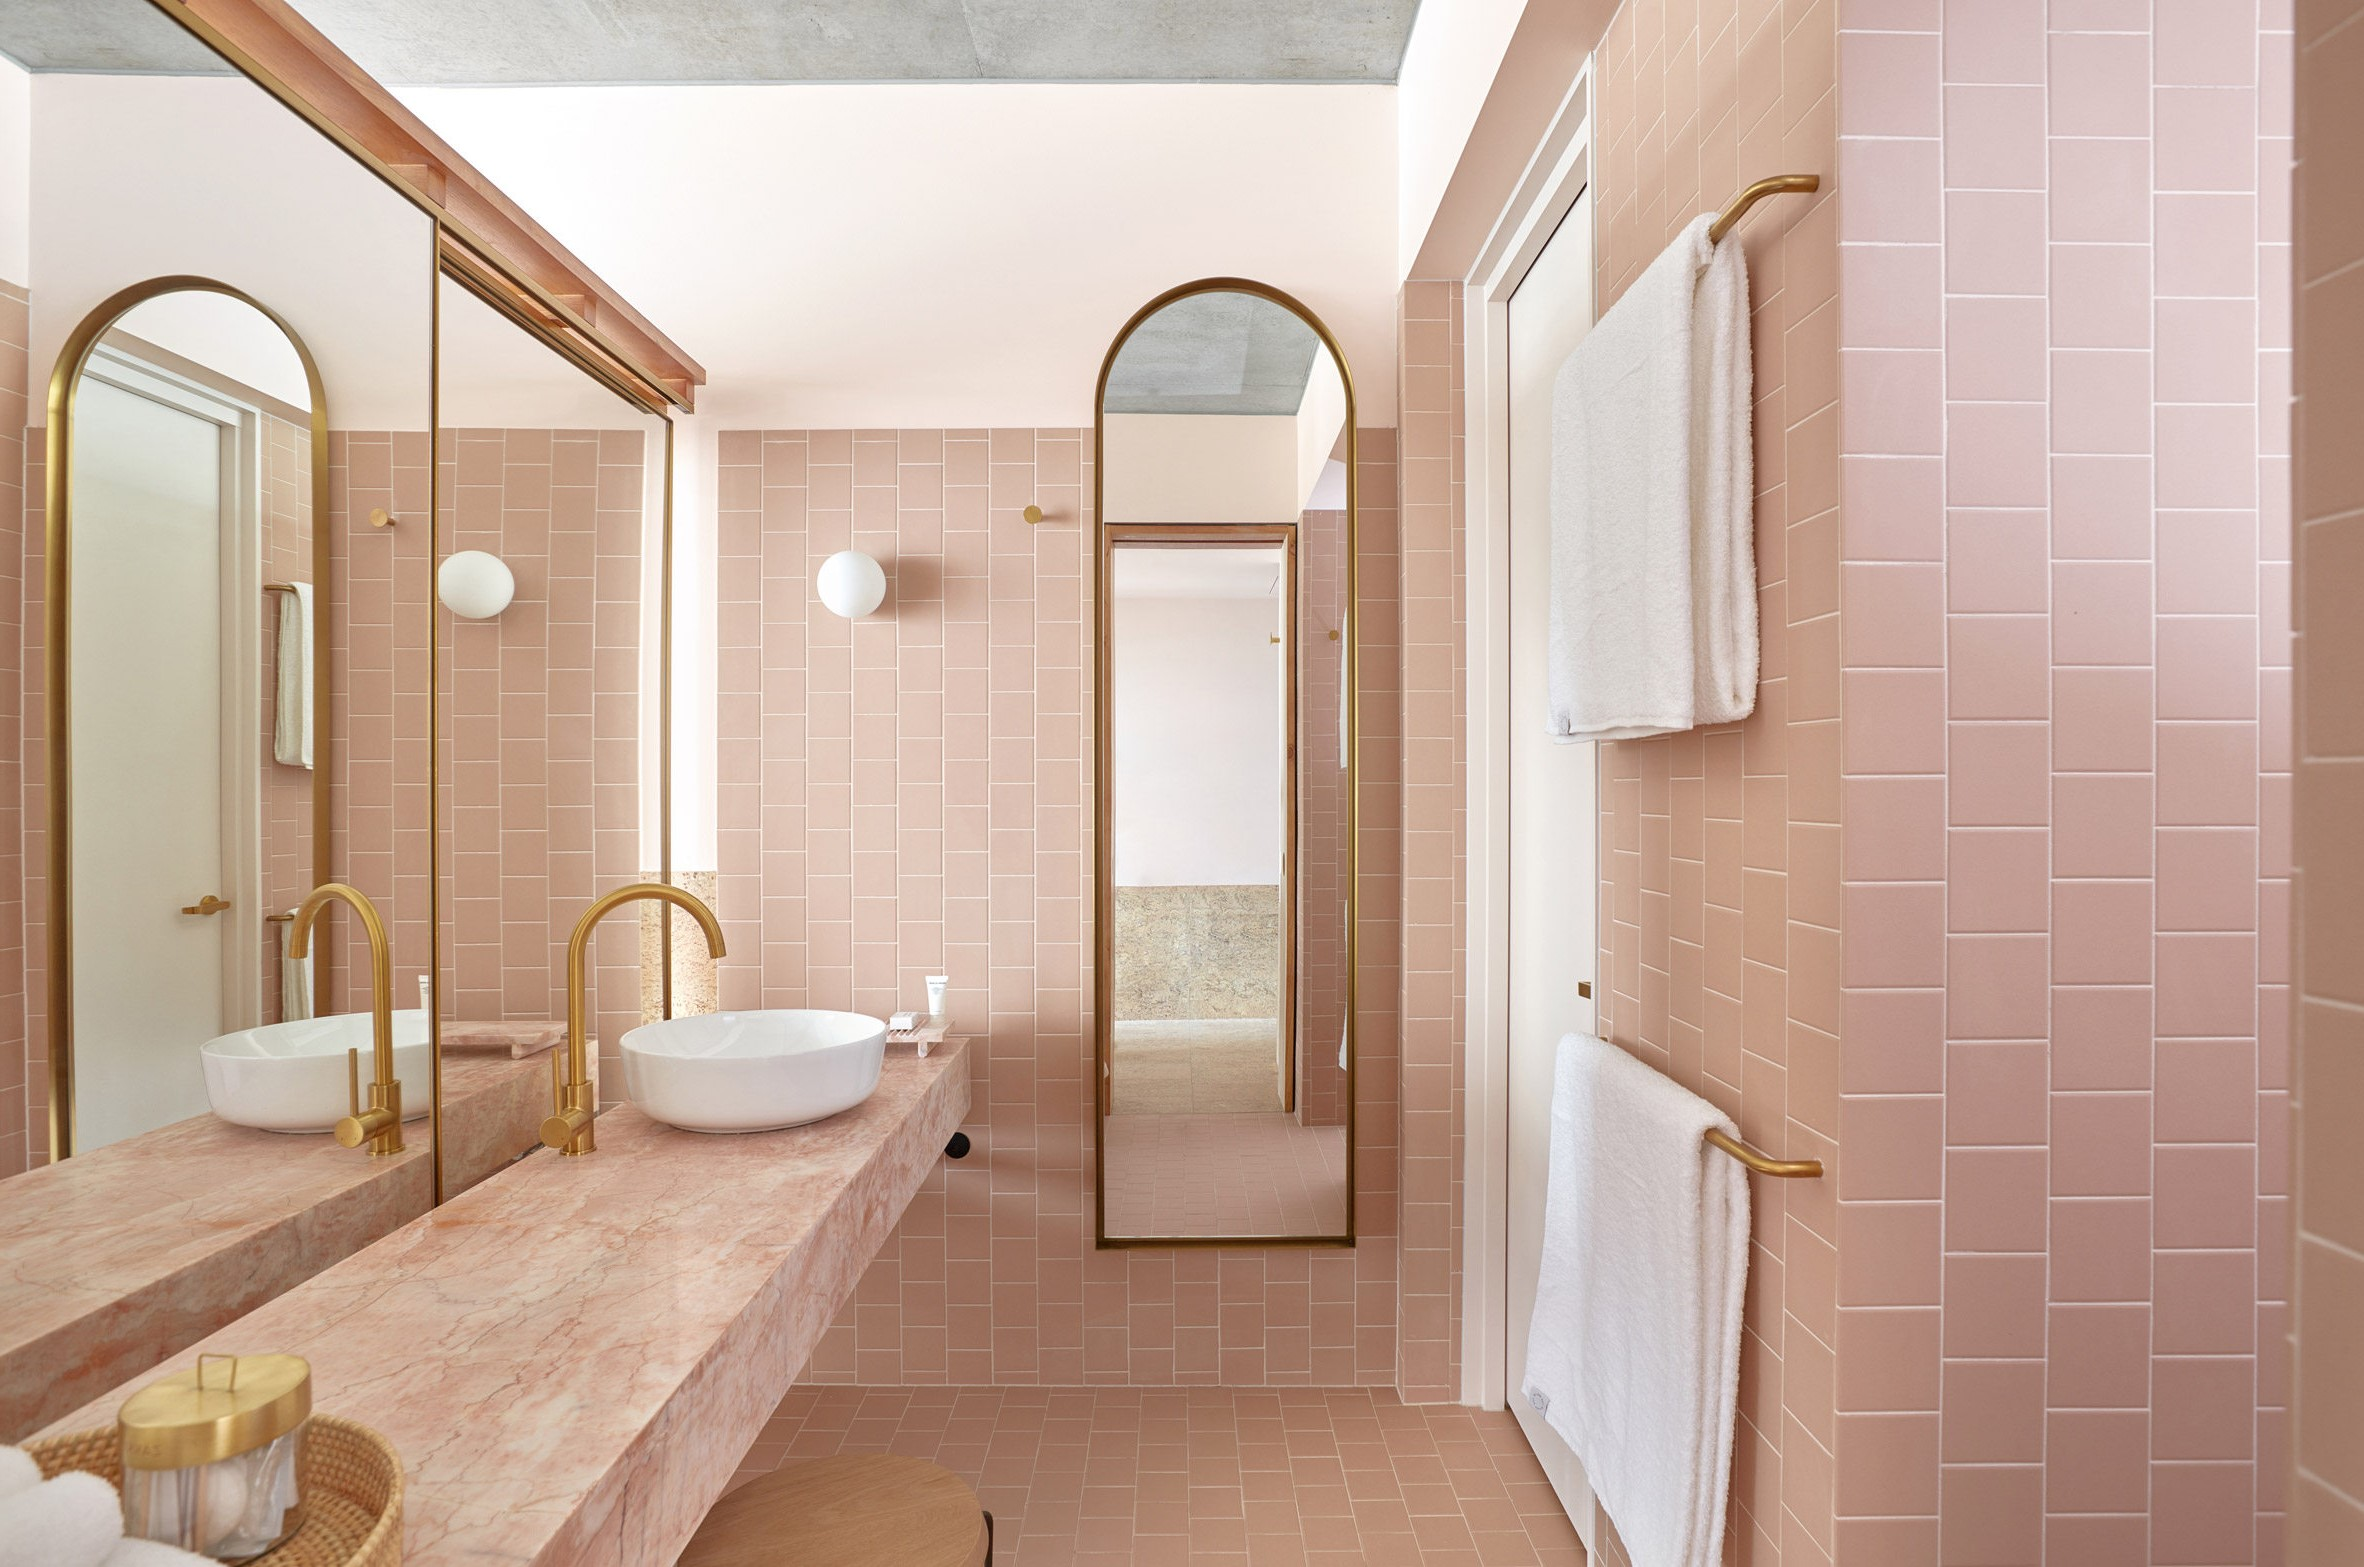 Peachy pink | 10 Best and Worst Colors for Your Bathroom | Her Beauty